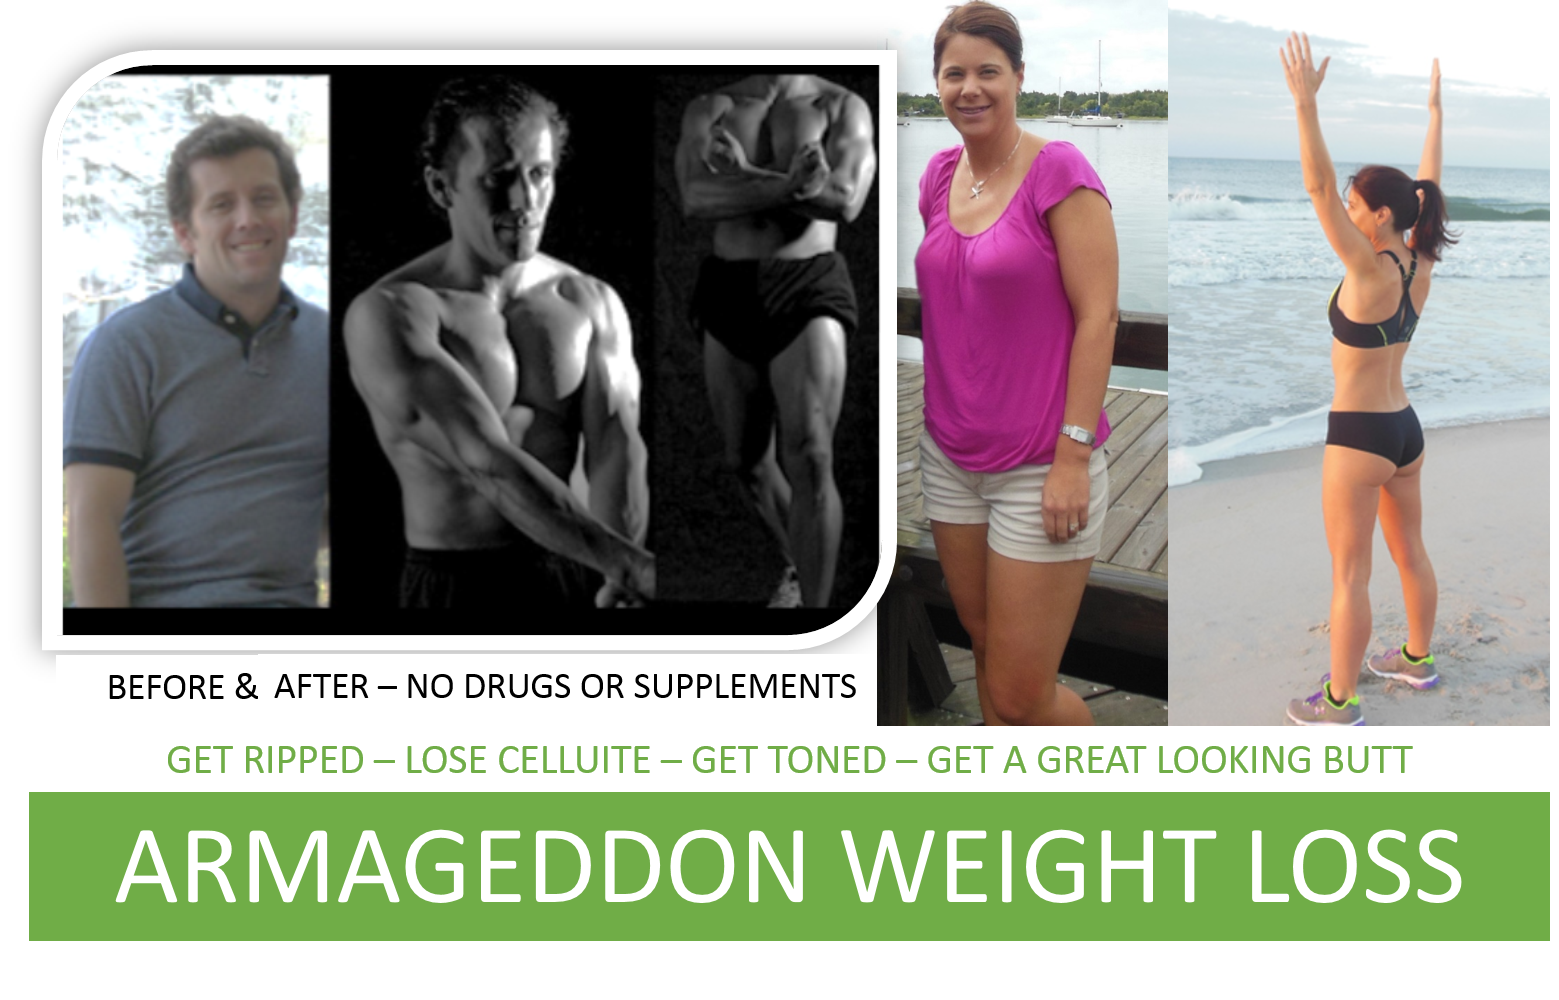 RUBEN - Armageddon Weight Loss, how to lose cellulite fast, how to lose weight fast, weight loss DVDs, best exercise DVD..